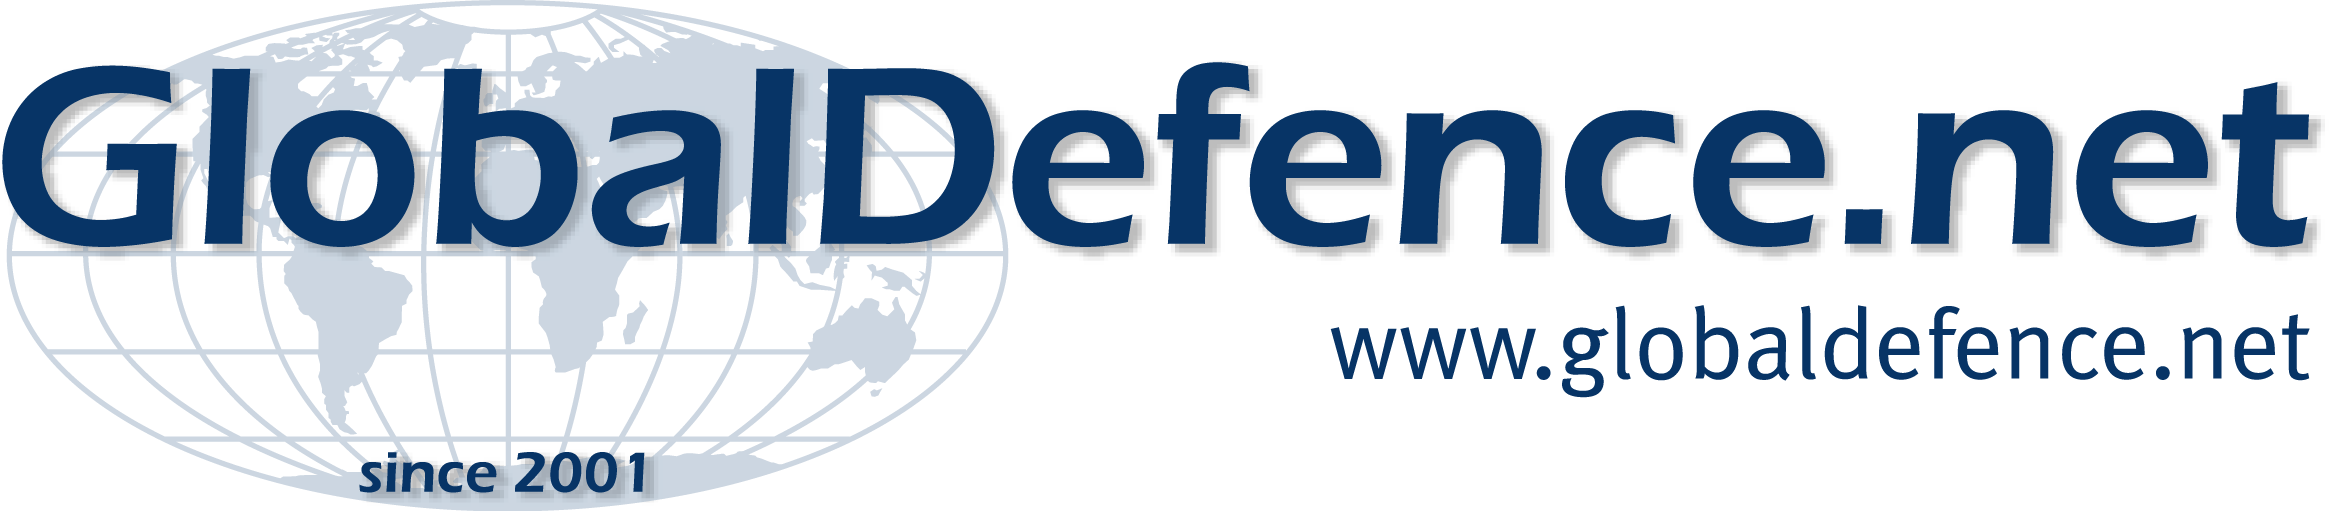 GlobalDefence.net -Streitkräfte der Welt